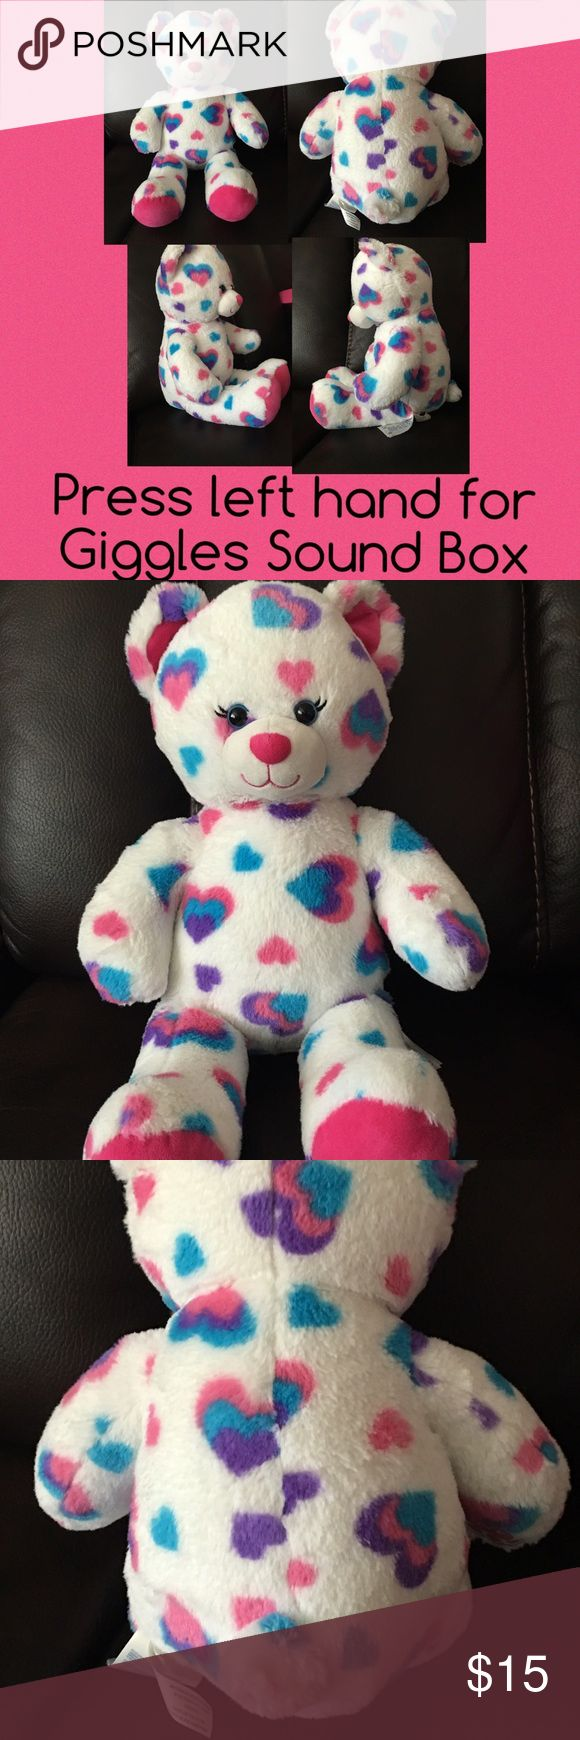 Build A Bear Excellent, clean condition. Sound box giggles when you press bears left hand. Herat has been inserted when originally stuffed. Make offer! Discount on bundles Other